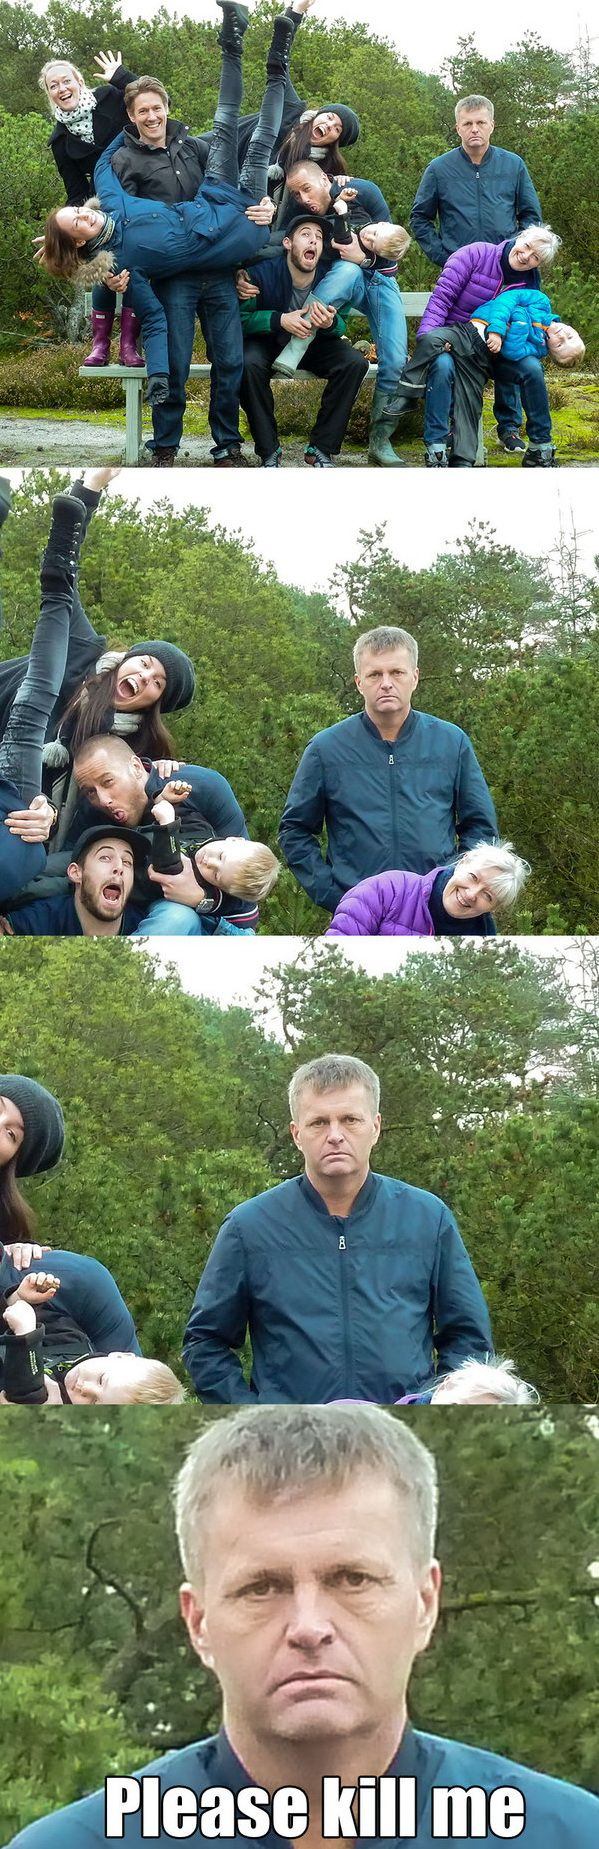 My Sister Wanted A Silly Family Photo